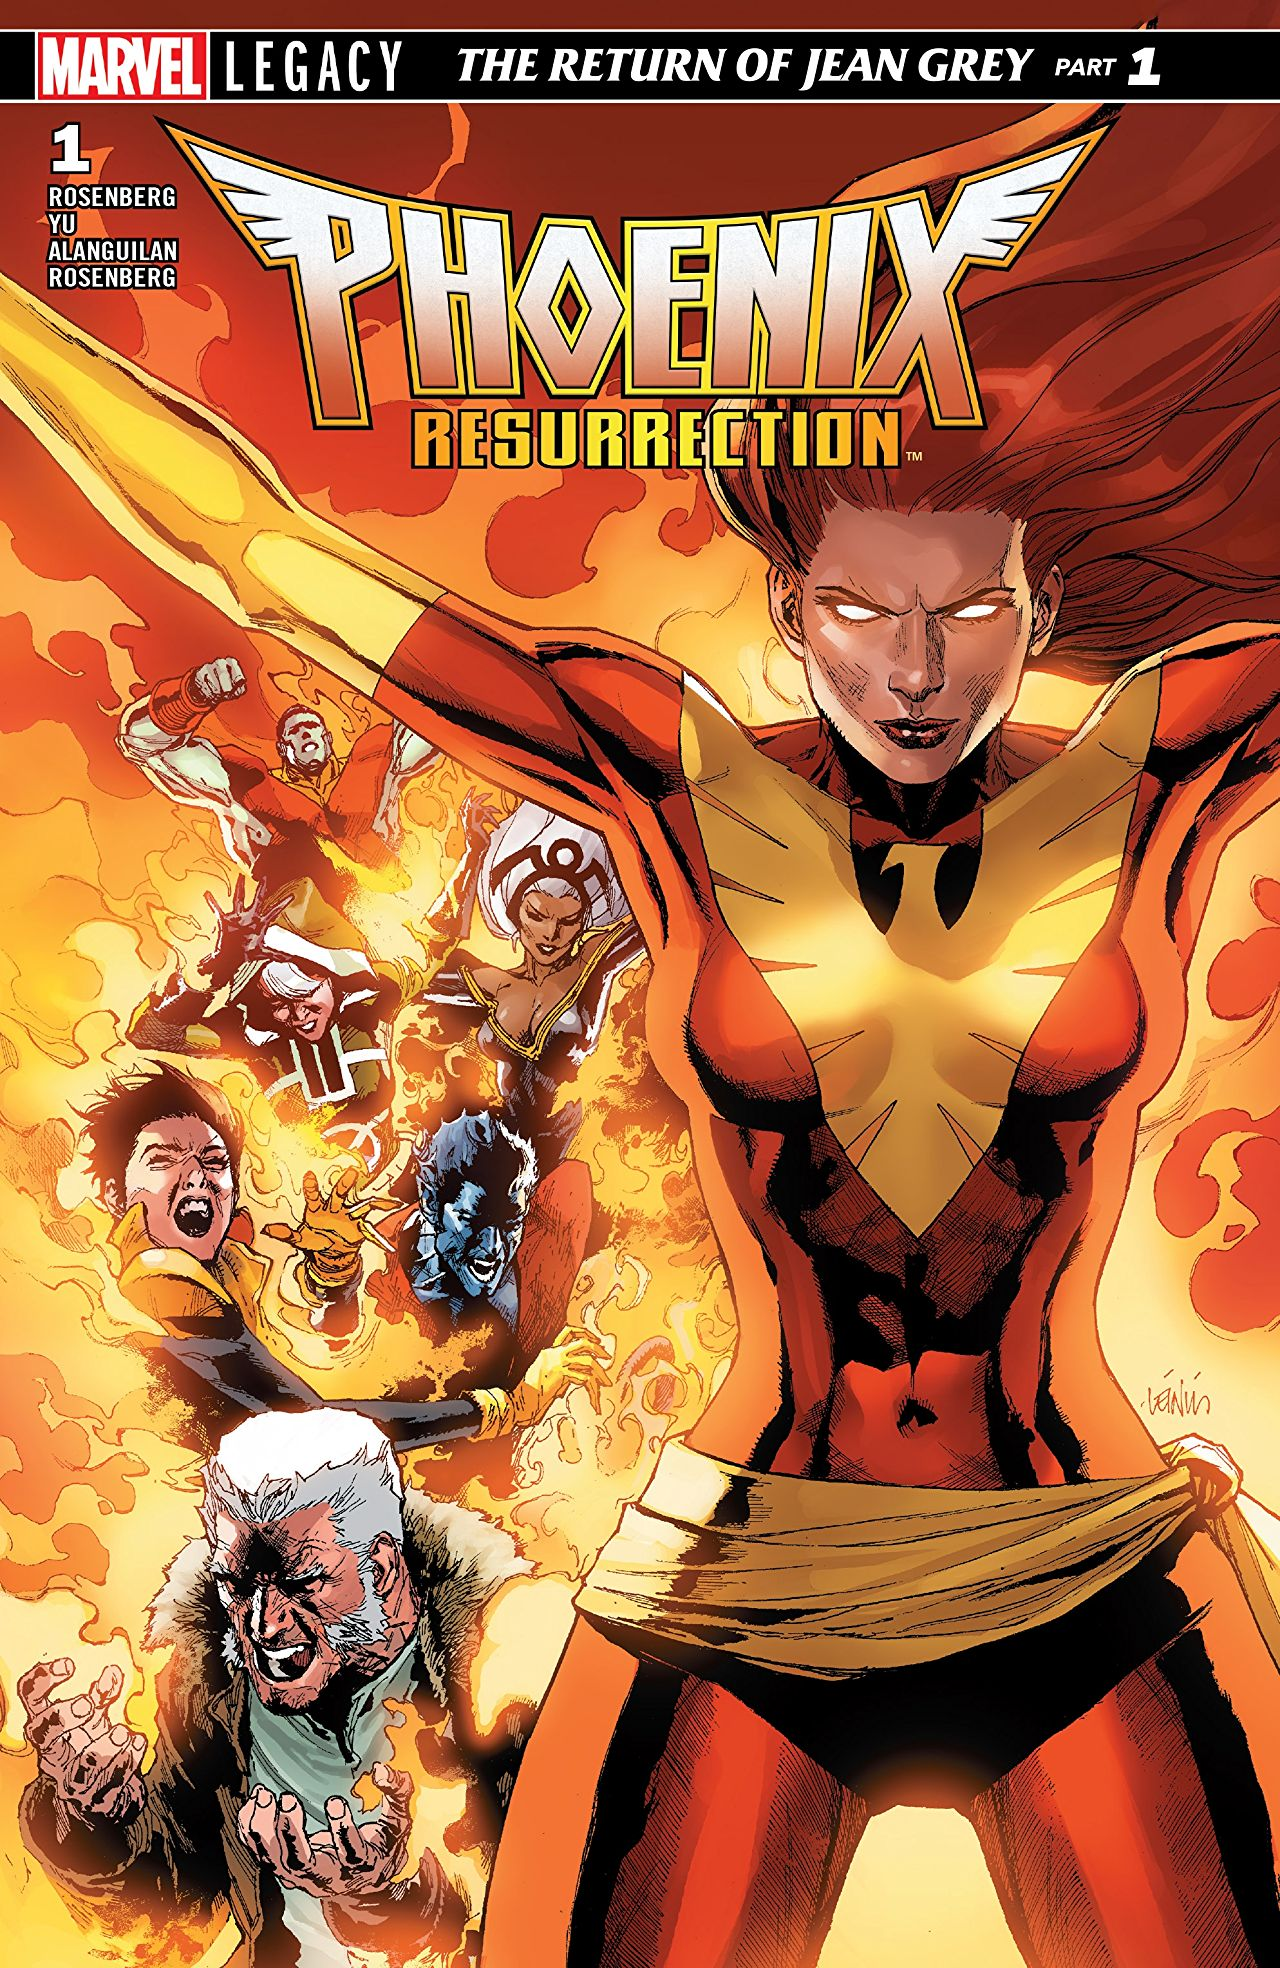 Phoenix Resurrection: The Return of Jean Grey #1 Review